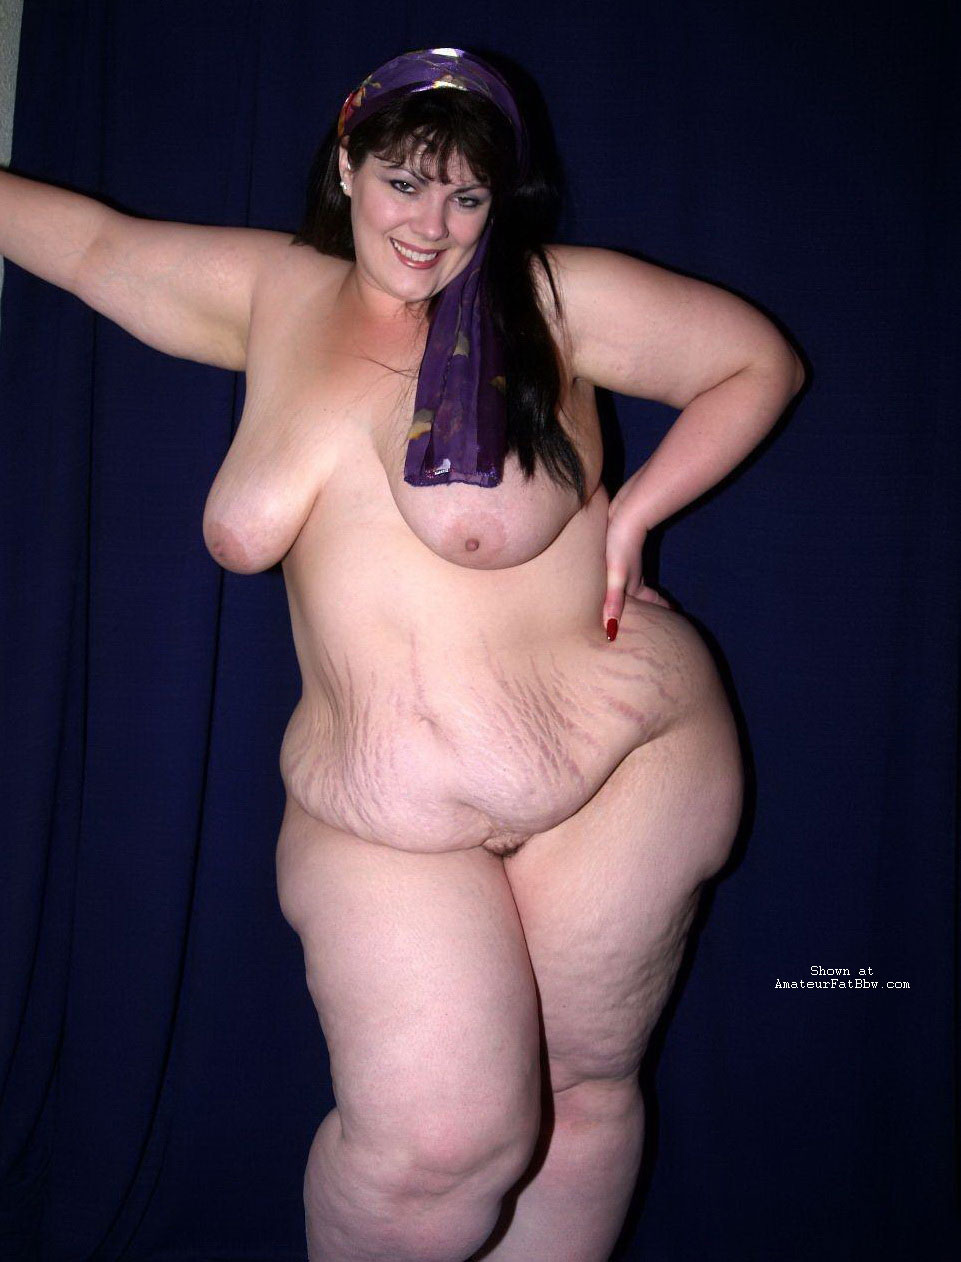 Big fat women naked and uncensored